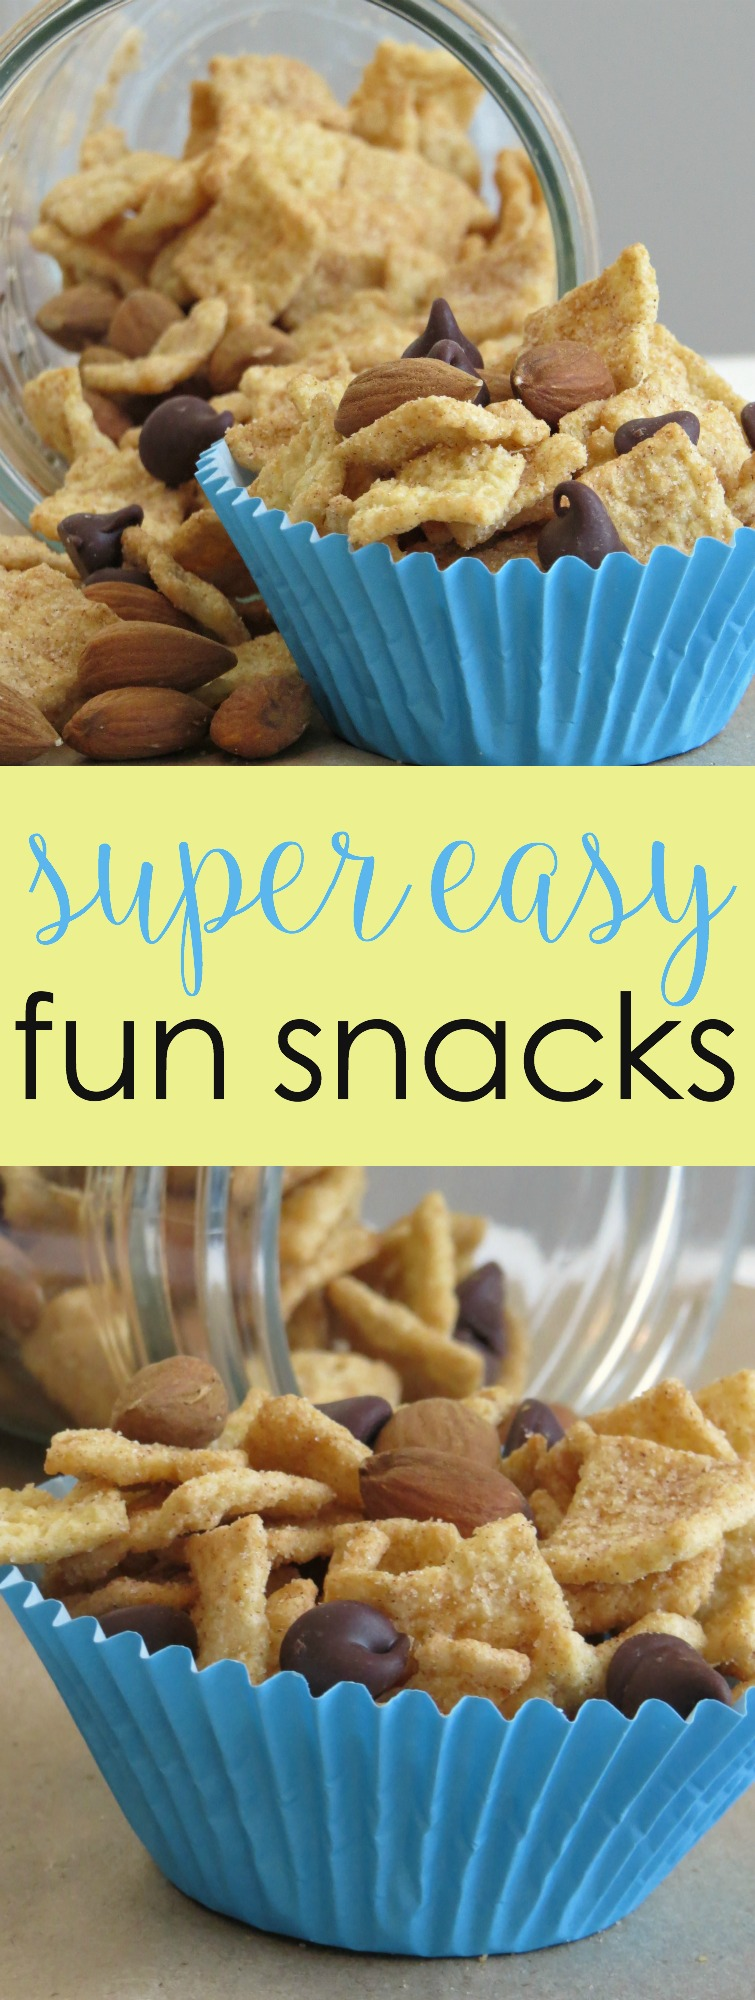 easy snack ideas